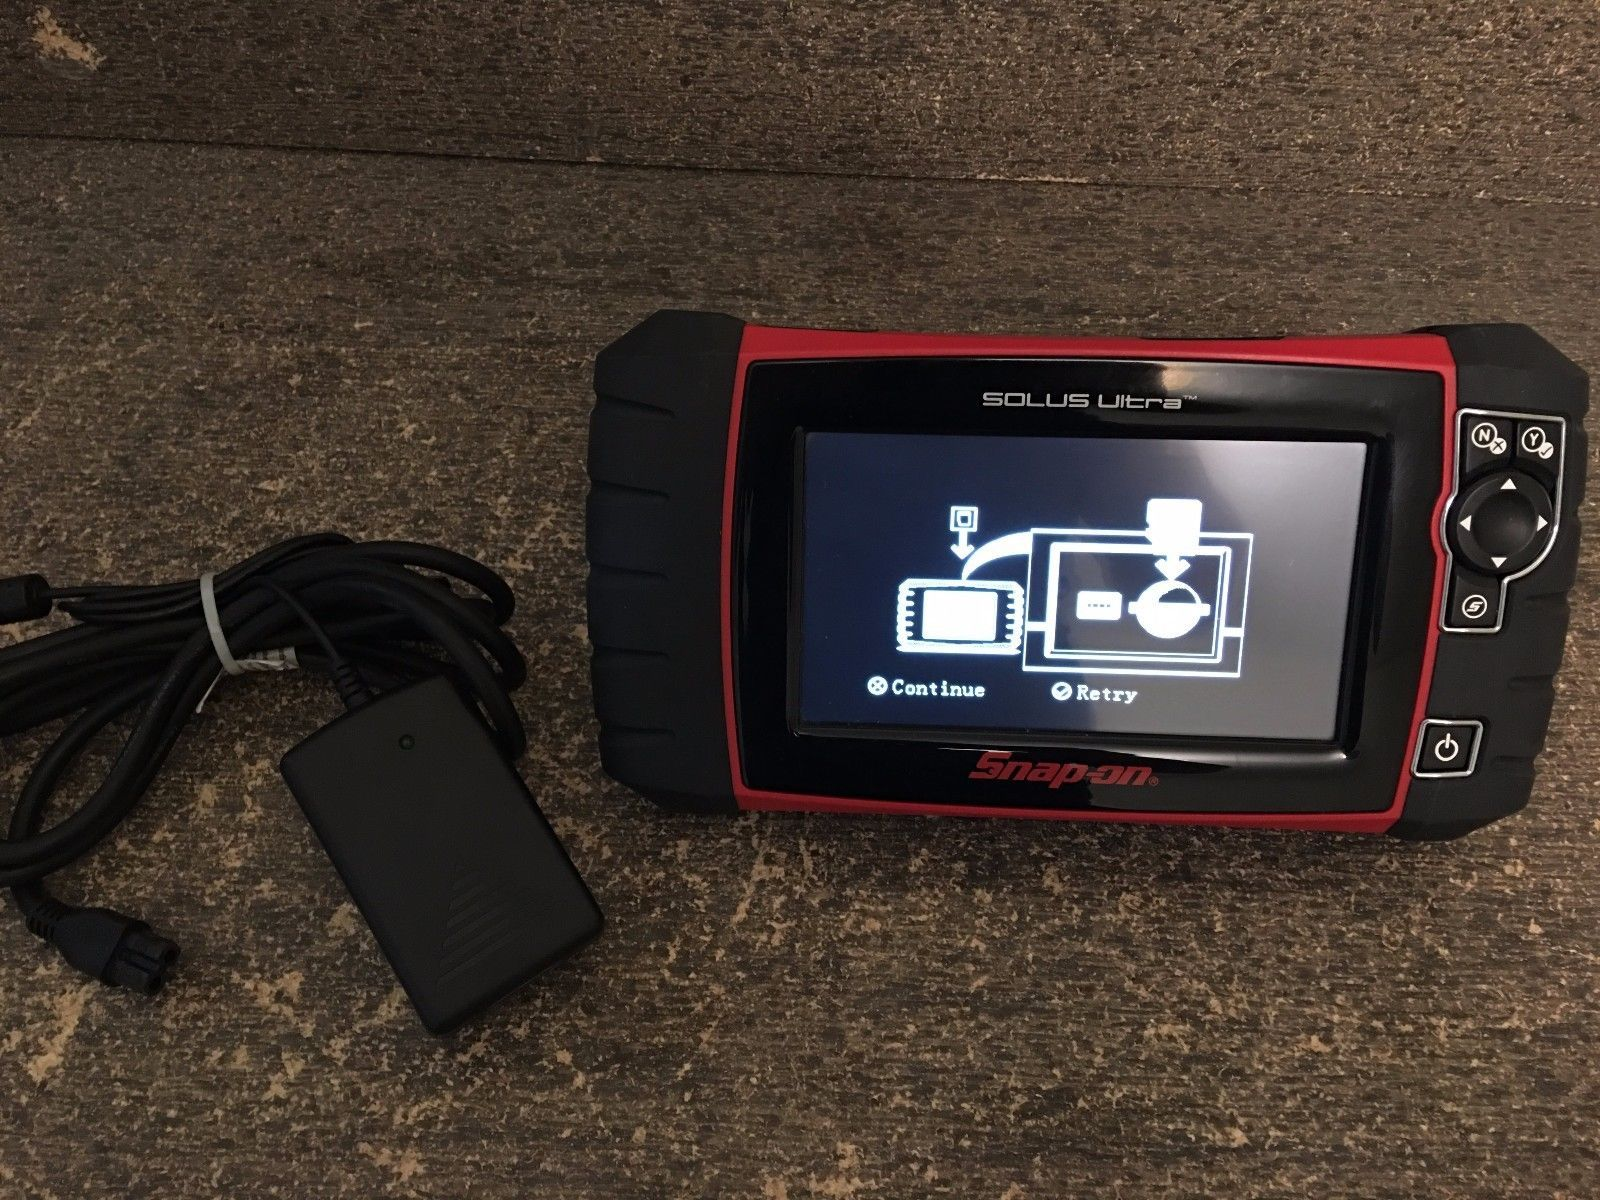 AS-IS Snap On Solus Ultra EESC318 Automotive Scan Tool NO SOFTWARE